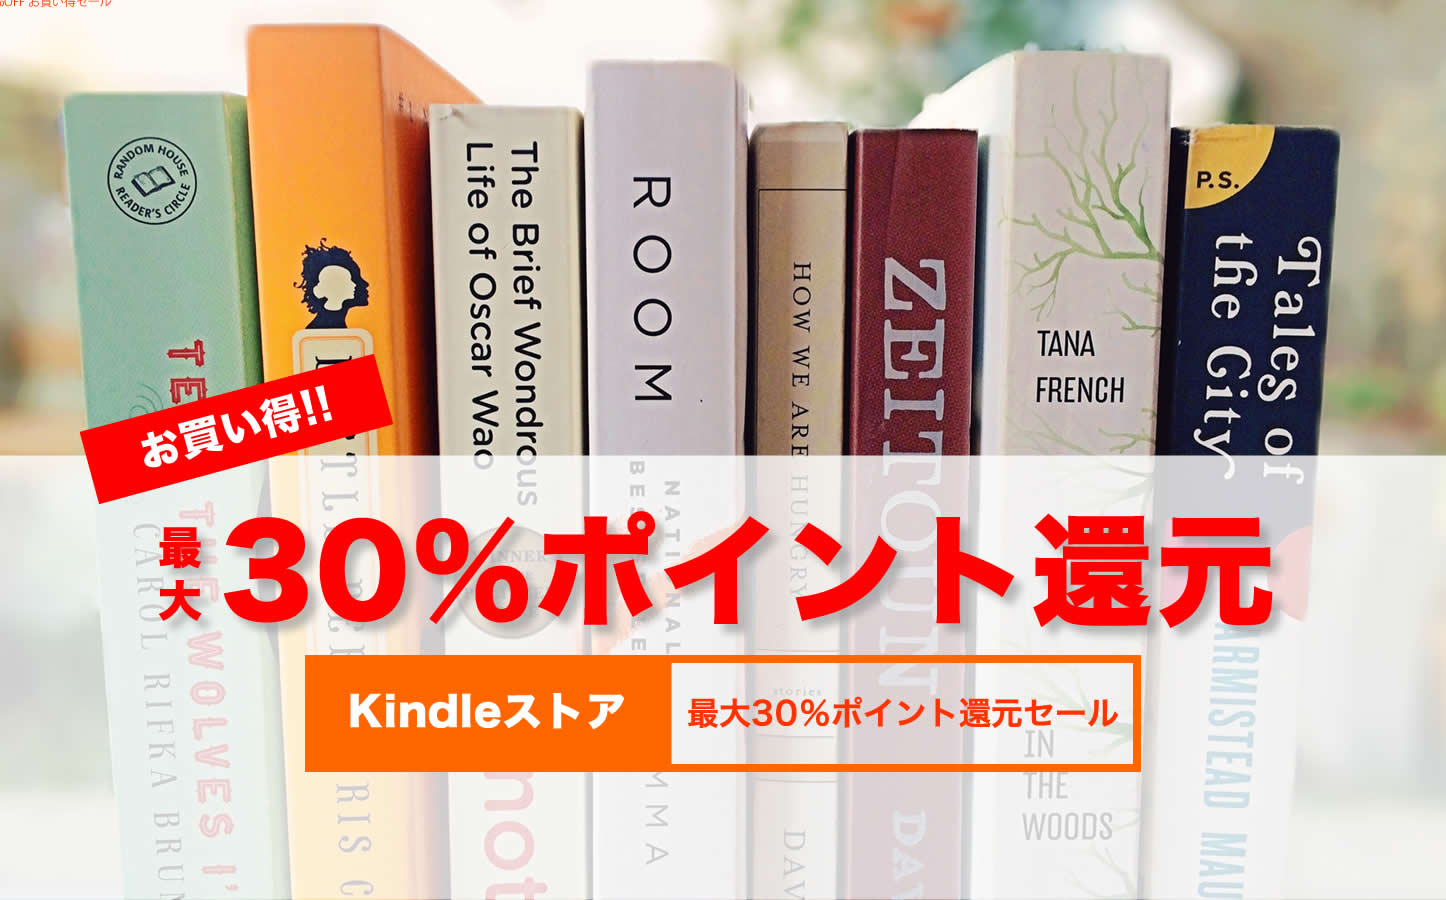 30percent-off-sale-shogakukan.jpg